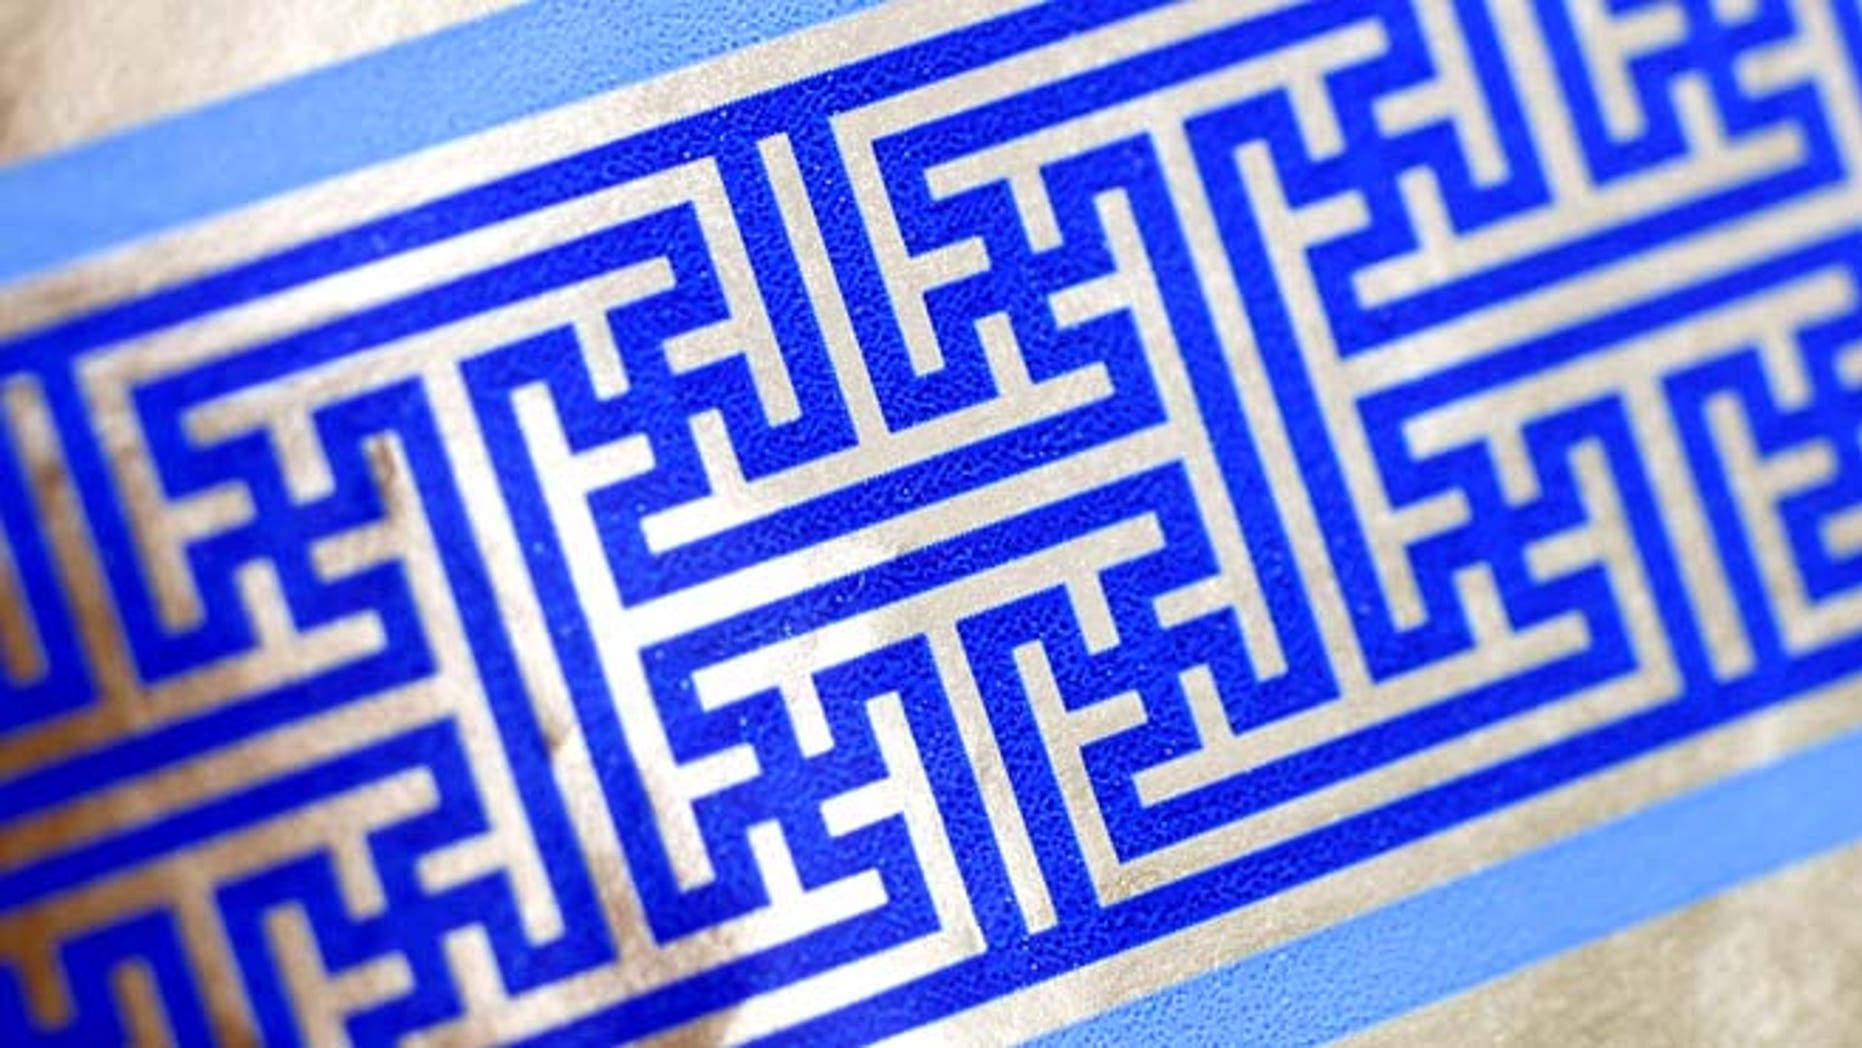 Dec. 8, 2014: Cheryl Shapiro displays the Hanukkah gift wrap with a swastika-like pattern she found at Walgreens in Northridge, Calif.  The wrapping paper has been recalled from stores nationwide.